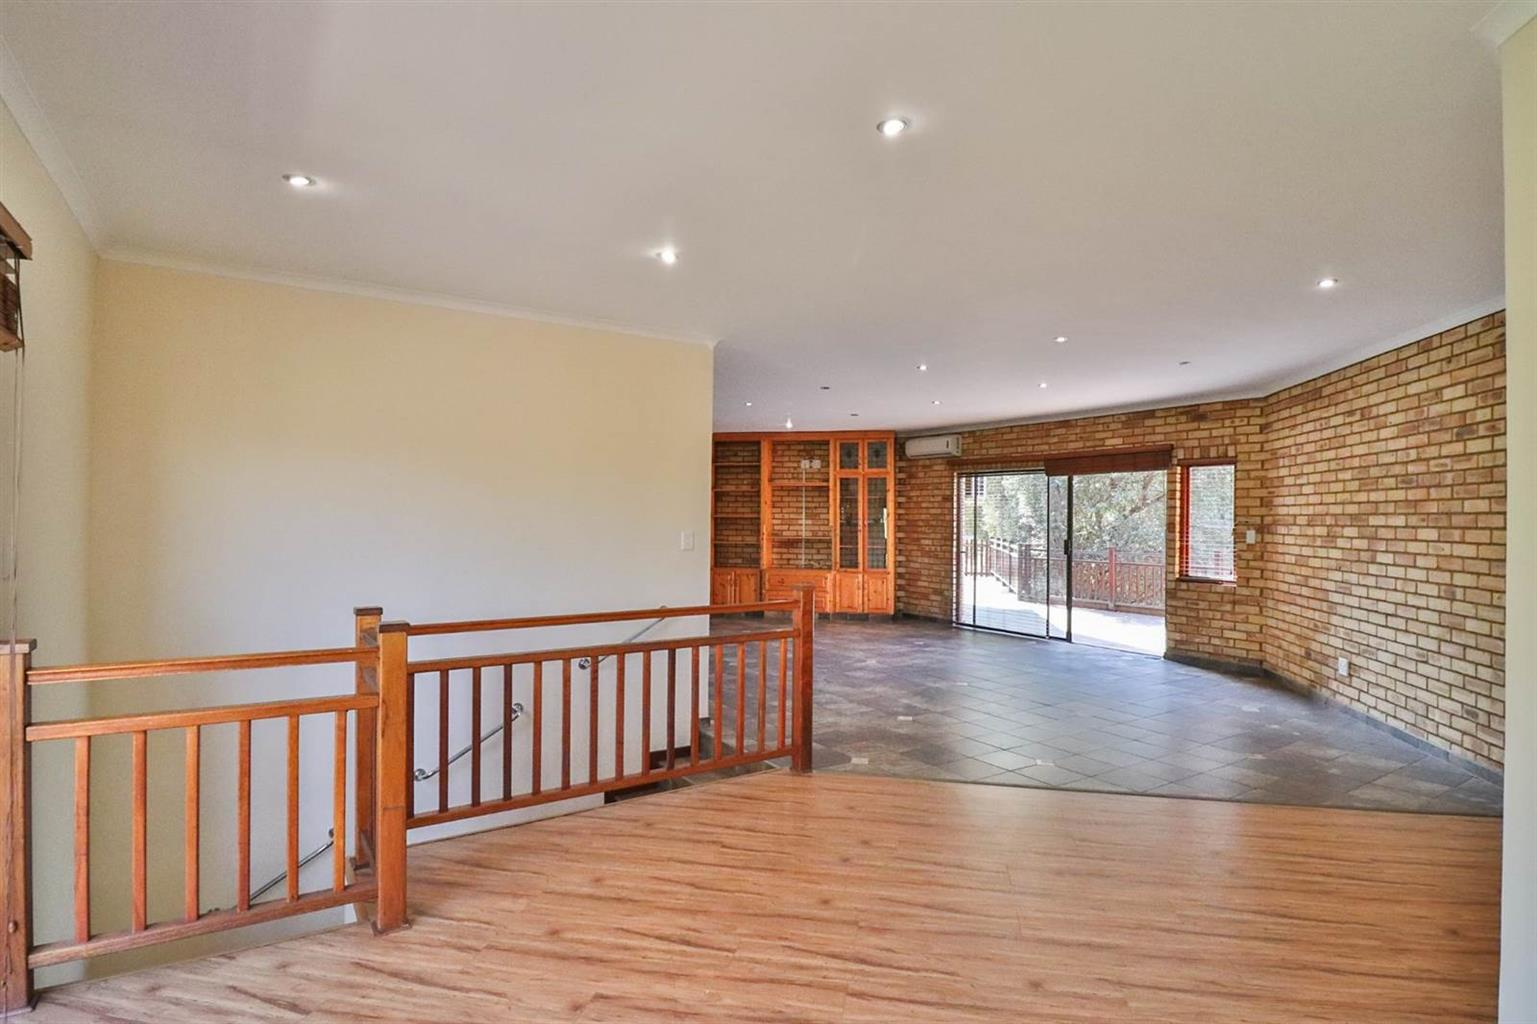 Spacious 3 bedroom house to rent in Magaliespark River Club